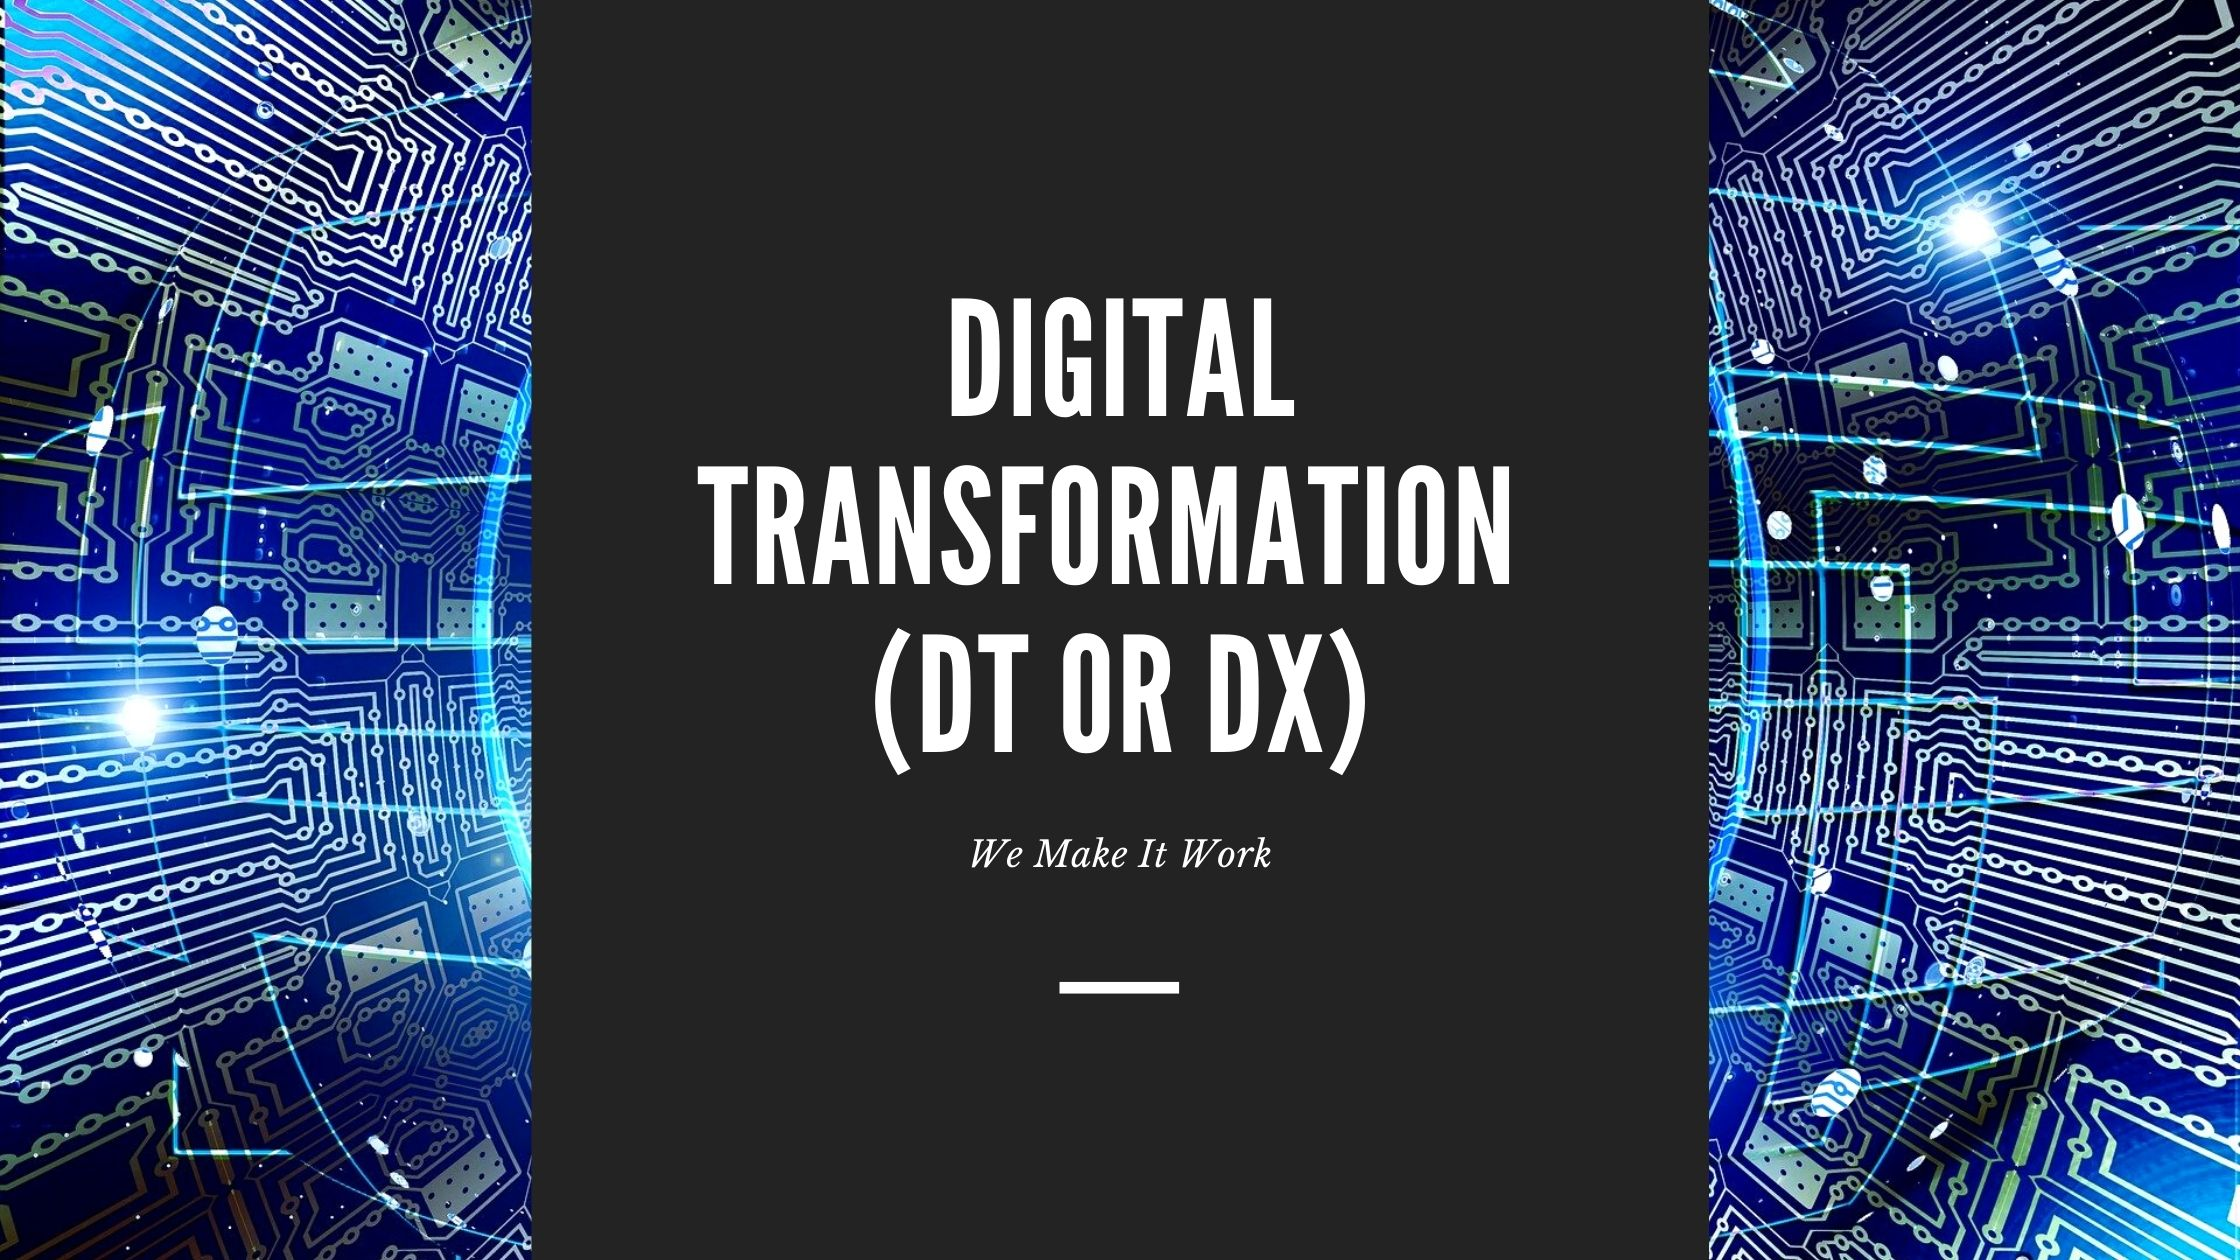 Looking to Achieve Digital Transformation (DT or DX)?